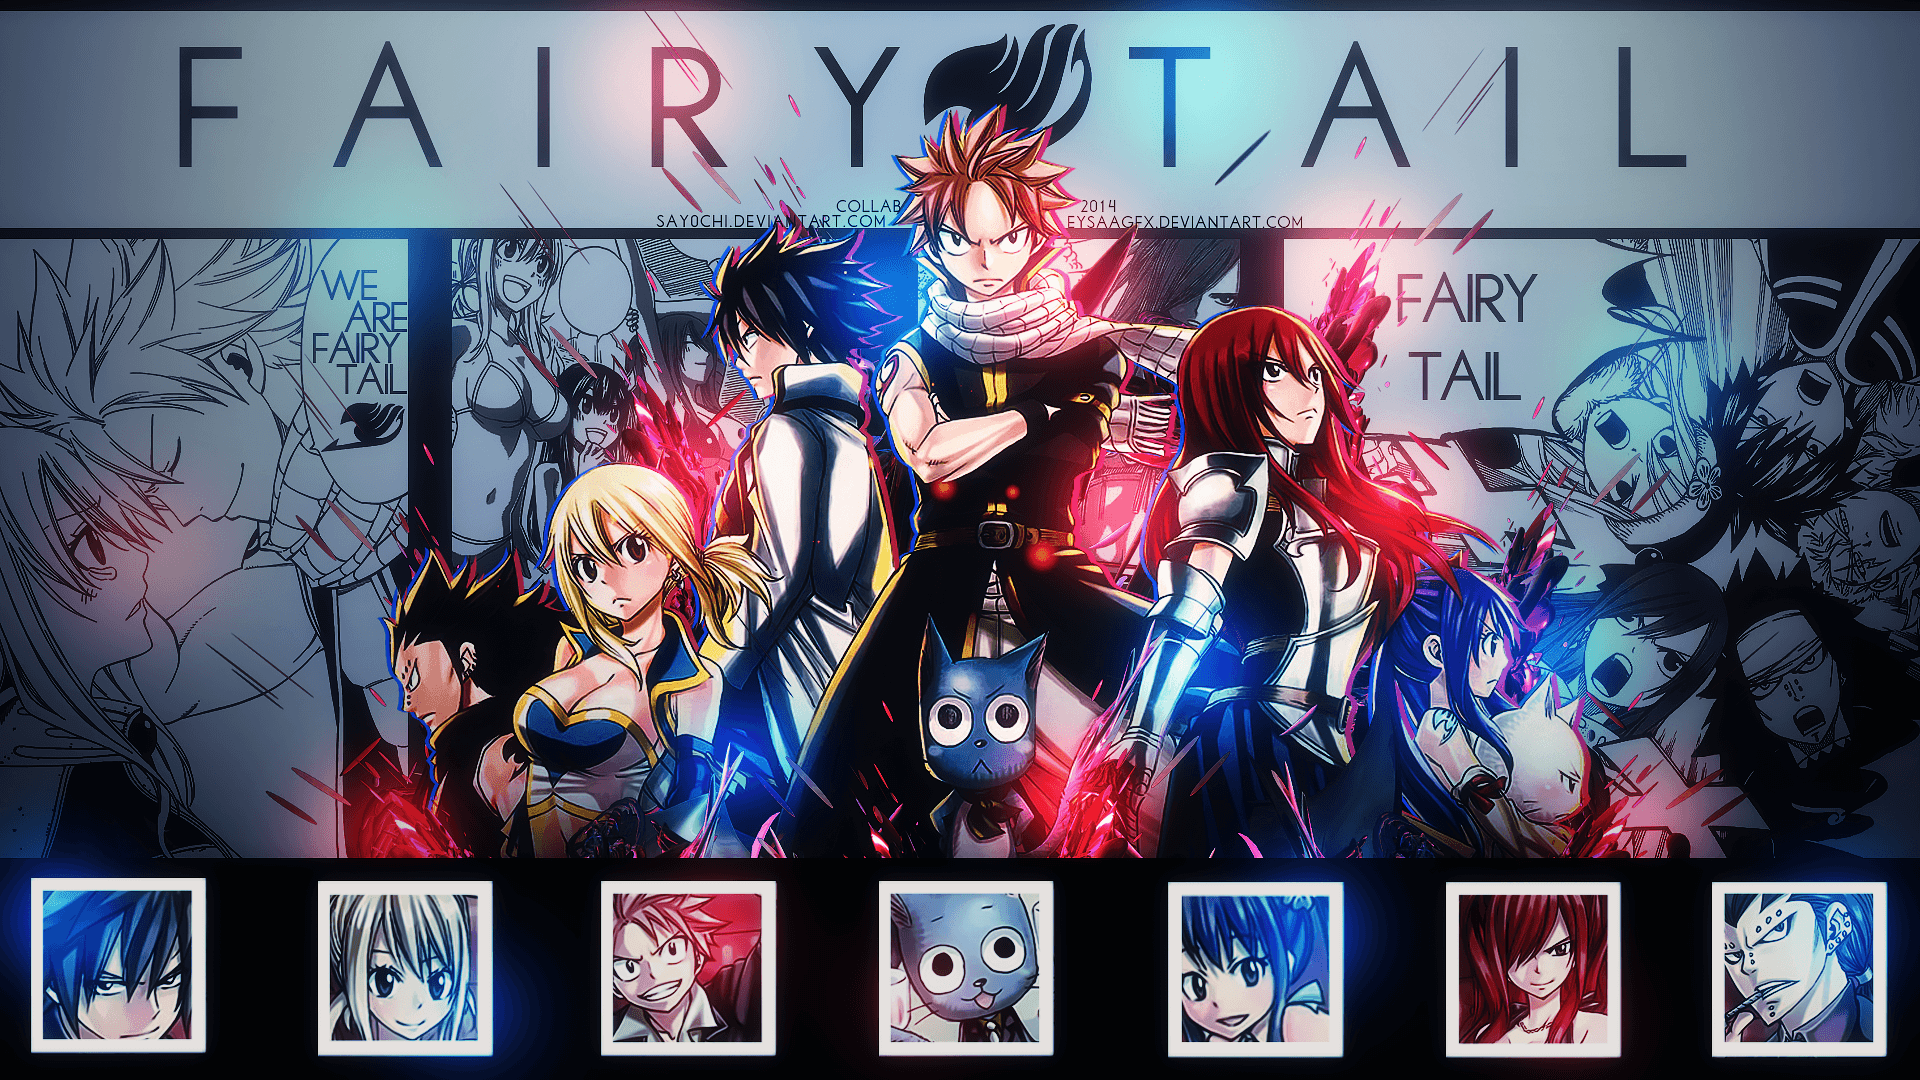 Fairy Tail 2016 Wallpapers - Wallpaper Cave